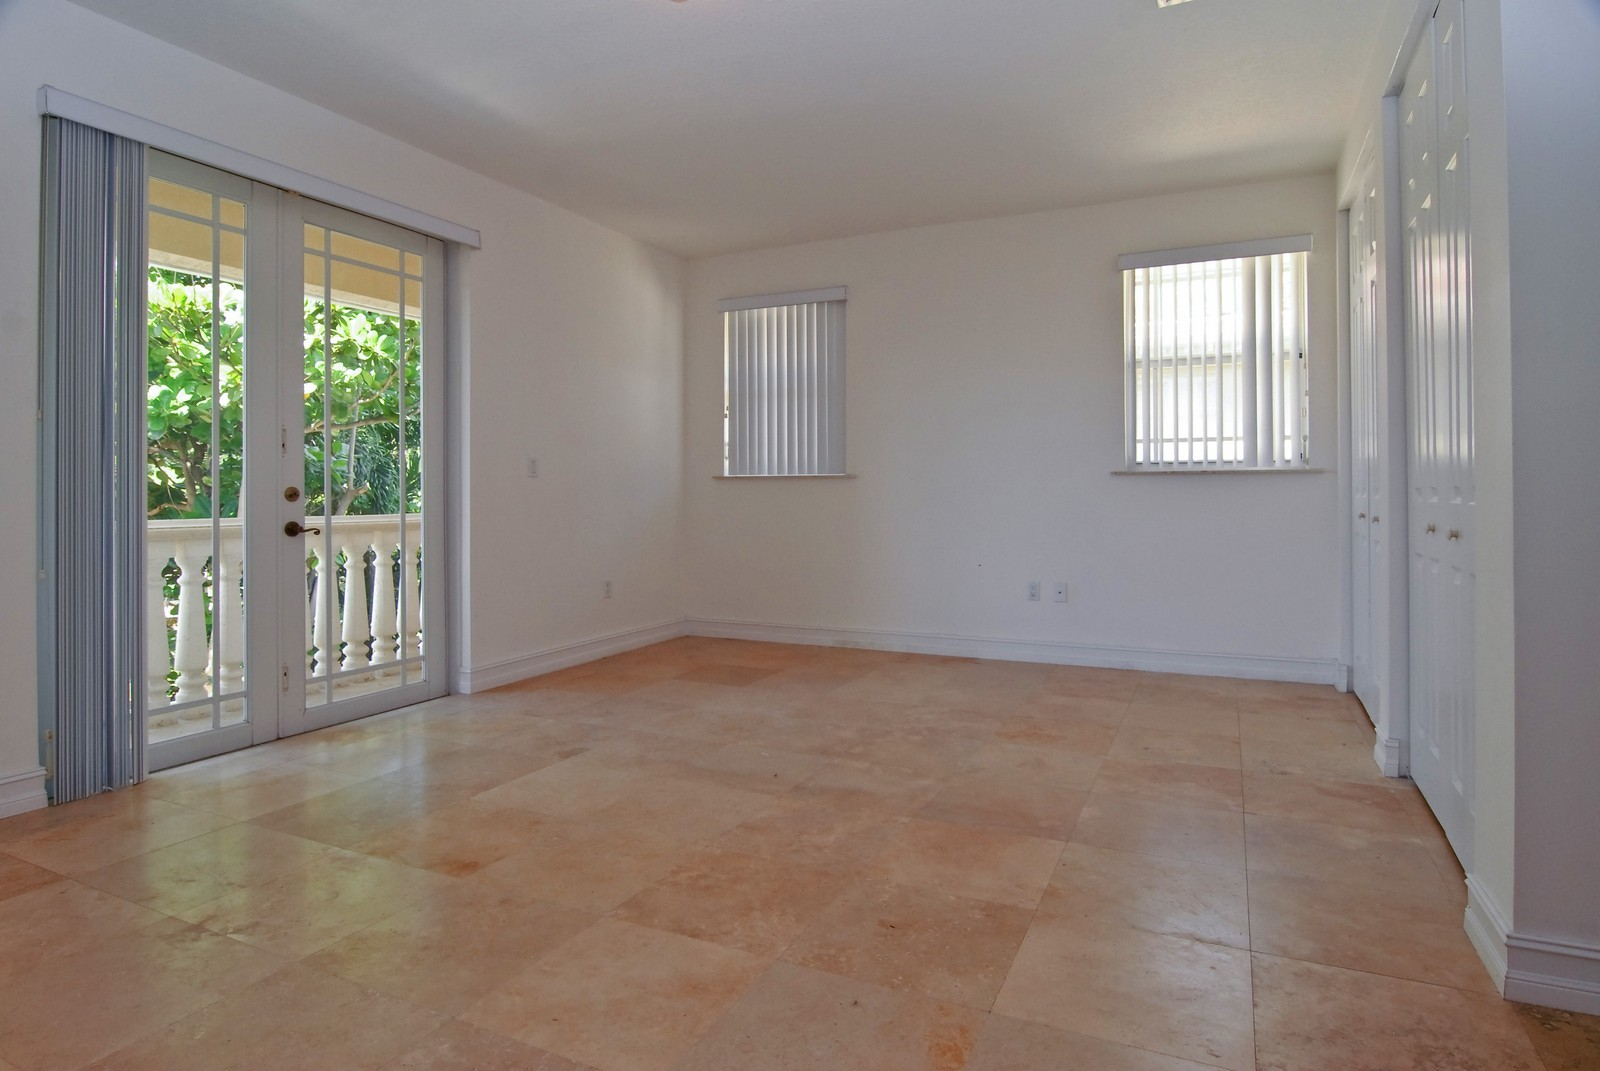 Real Estate Photography - 3034 Indiana St, Miami, FL, 33133 - Master Bedroom